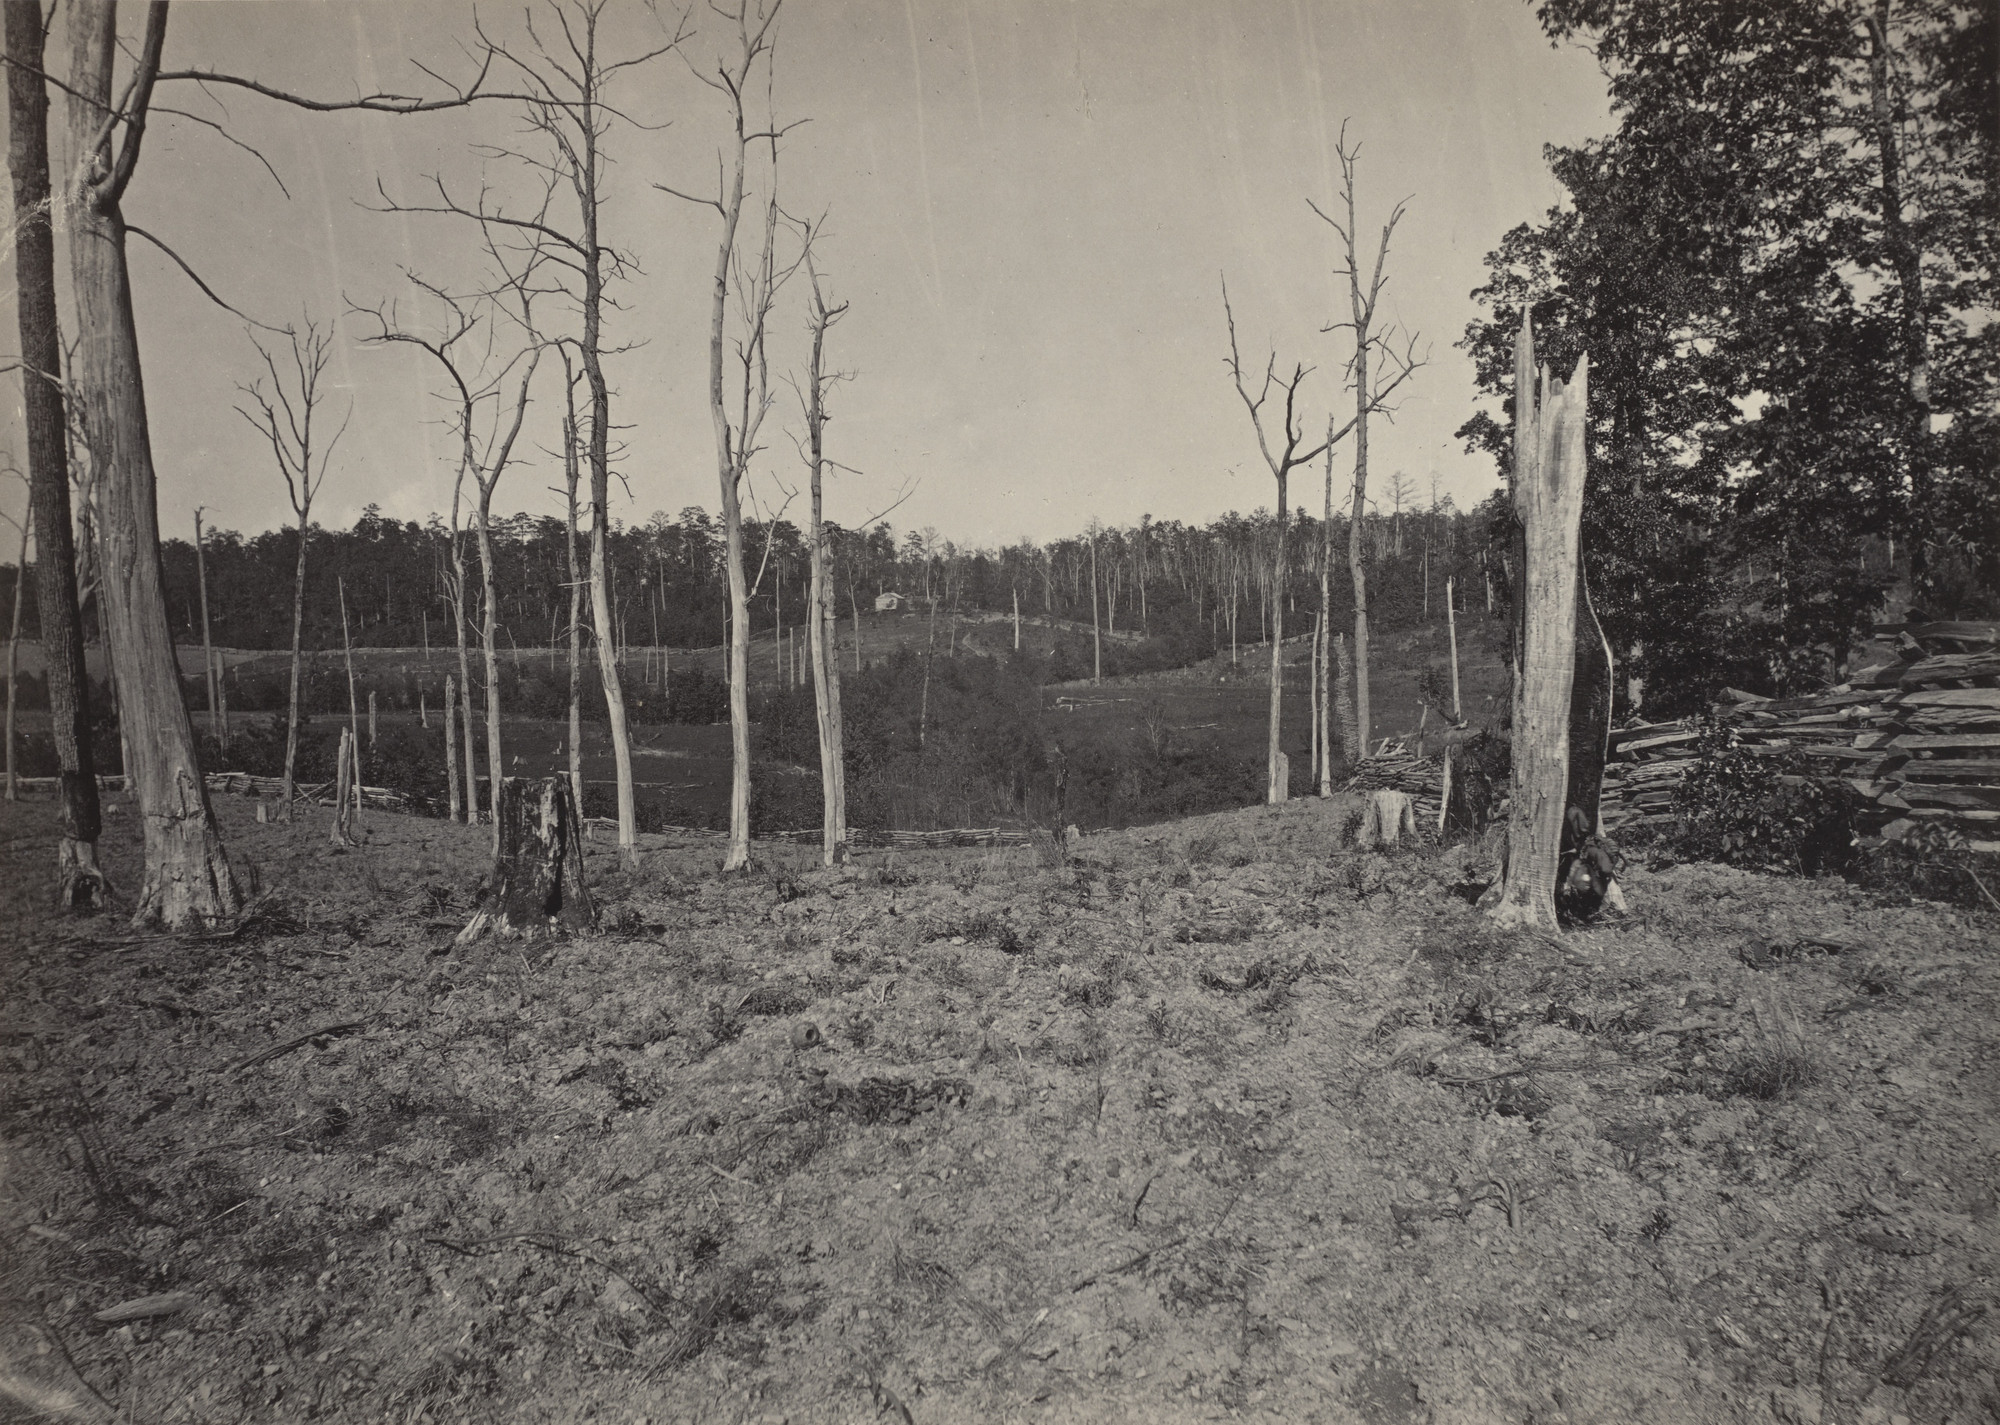 George Barnard. The Battle Ground of Resaca, No. 1 from the album Photographic Views of Sherman's Campaign. 1864-65